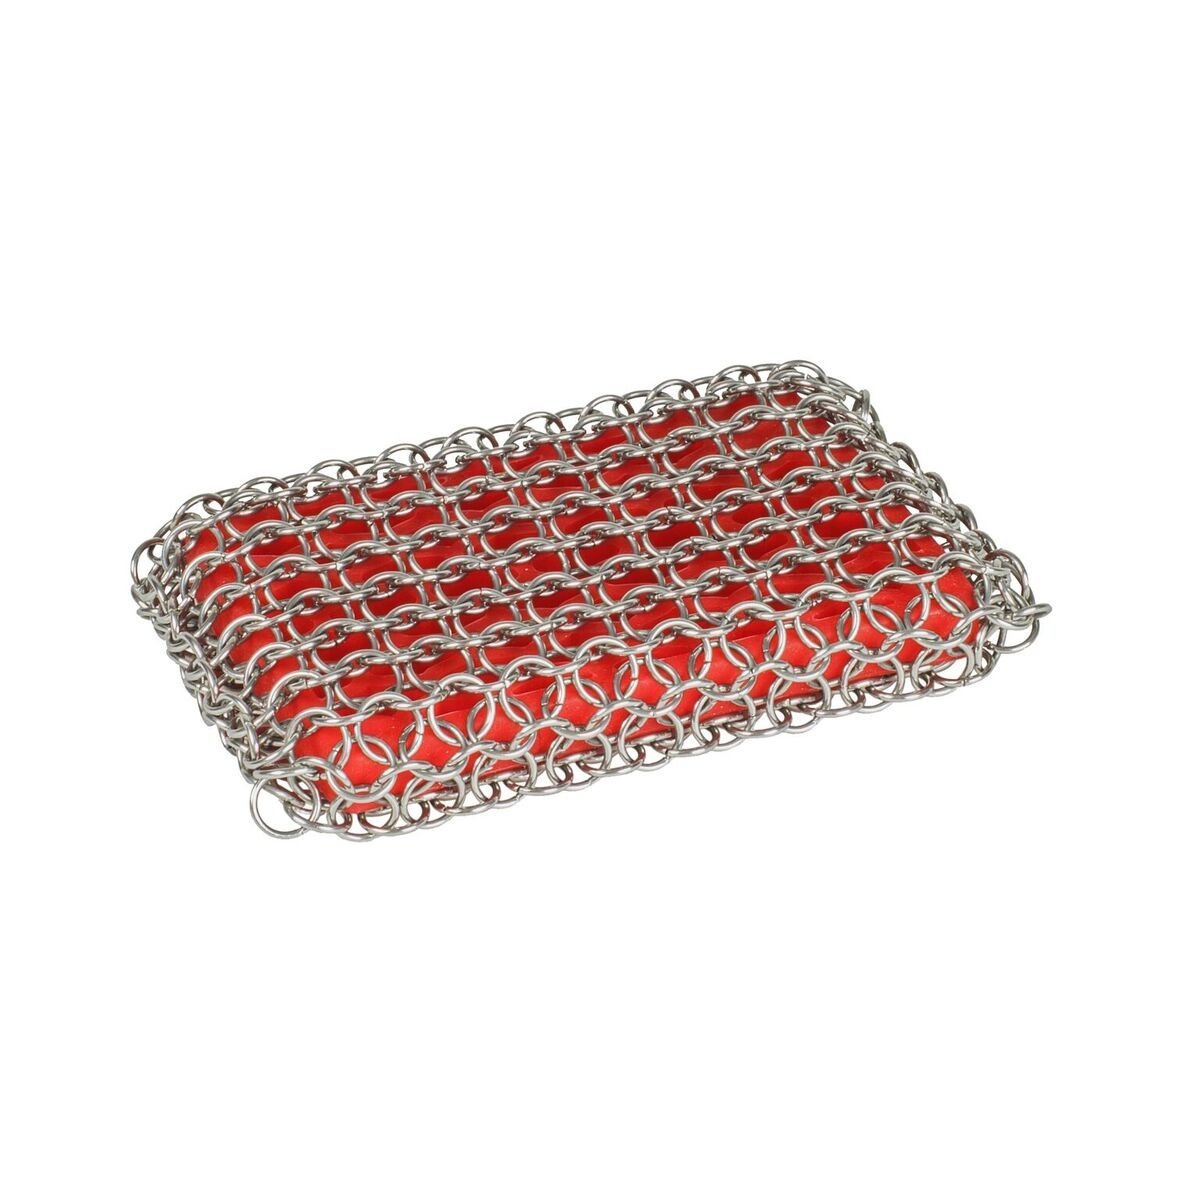 Lodge ACM10R41 Scrubbing pad, One, Red by Lodge